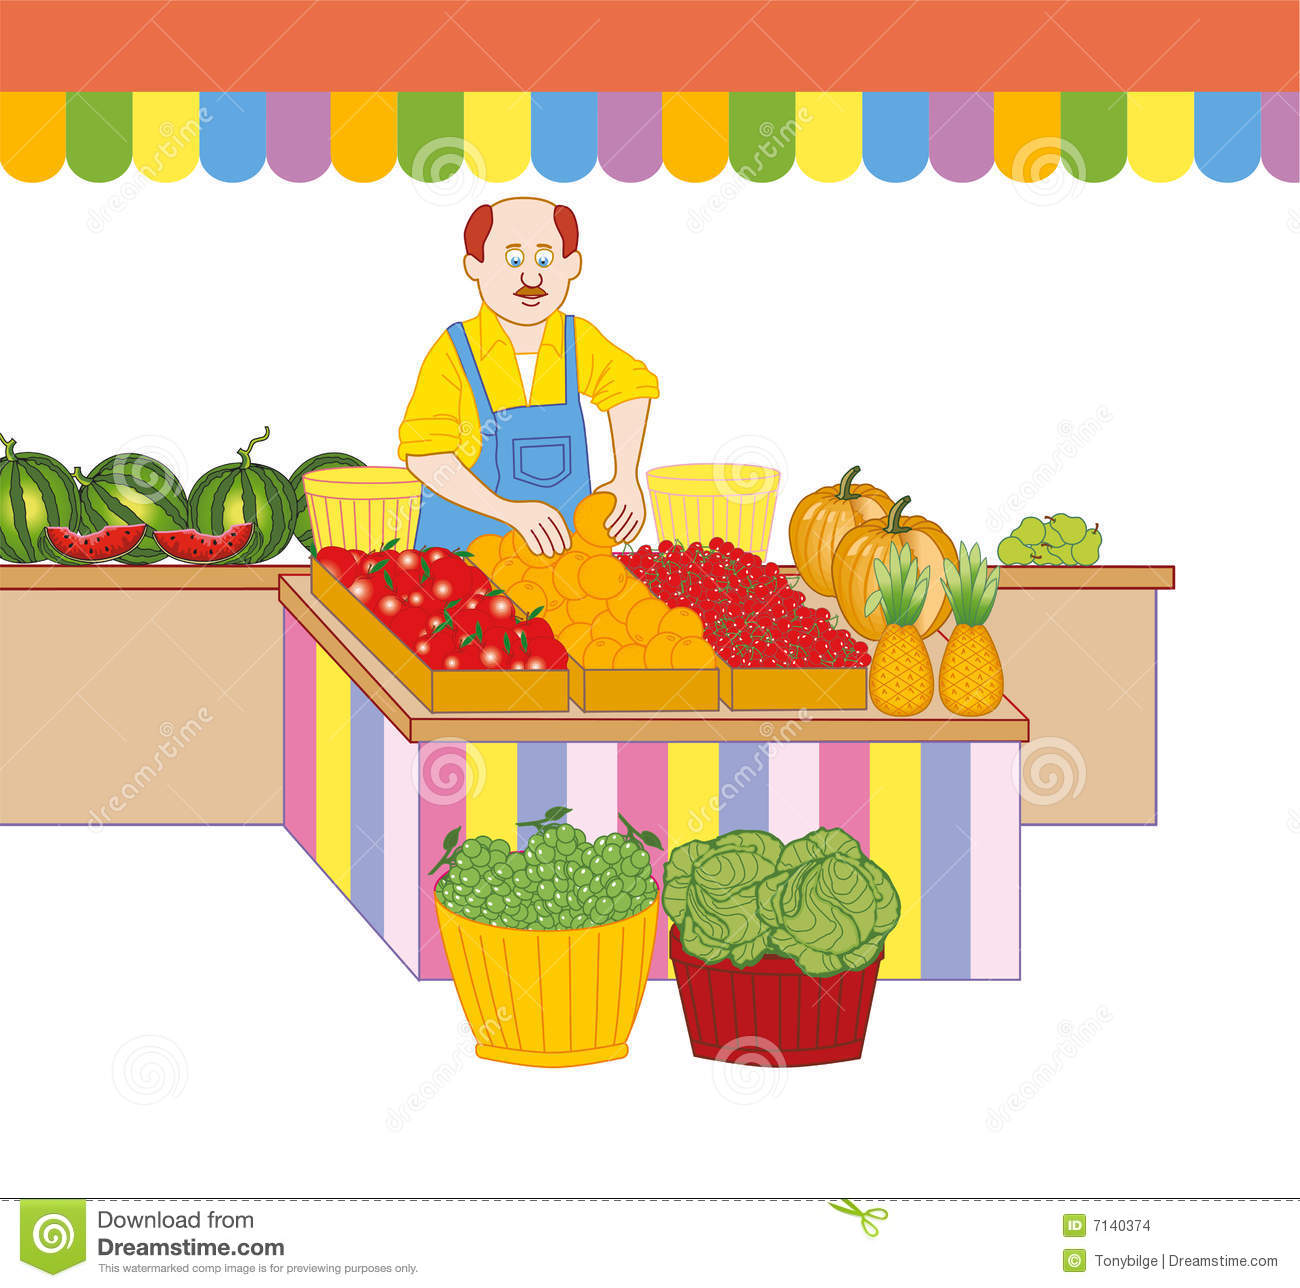 Green grocer clipart.